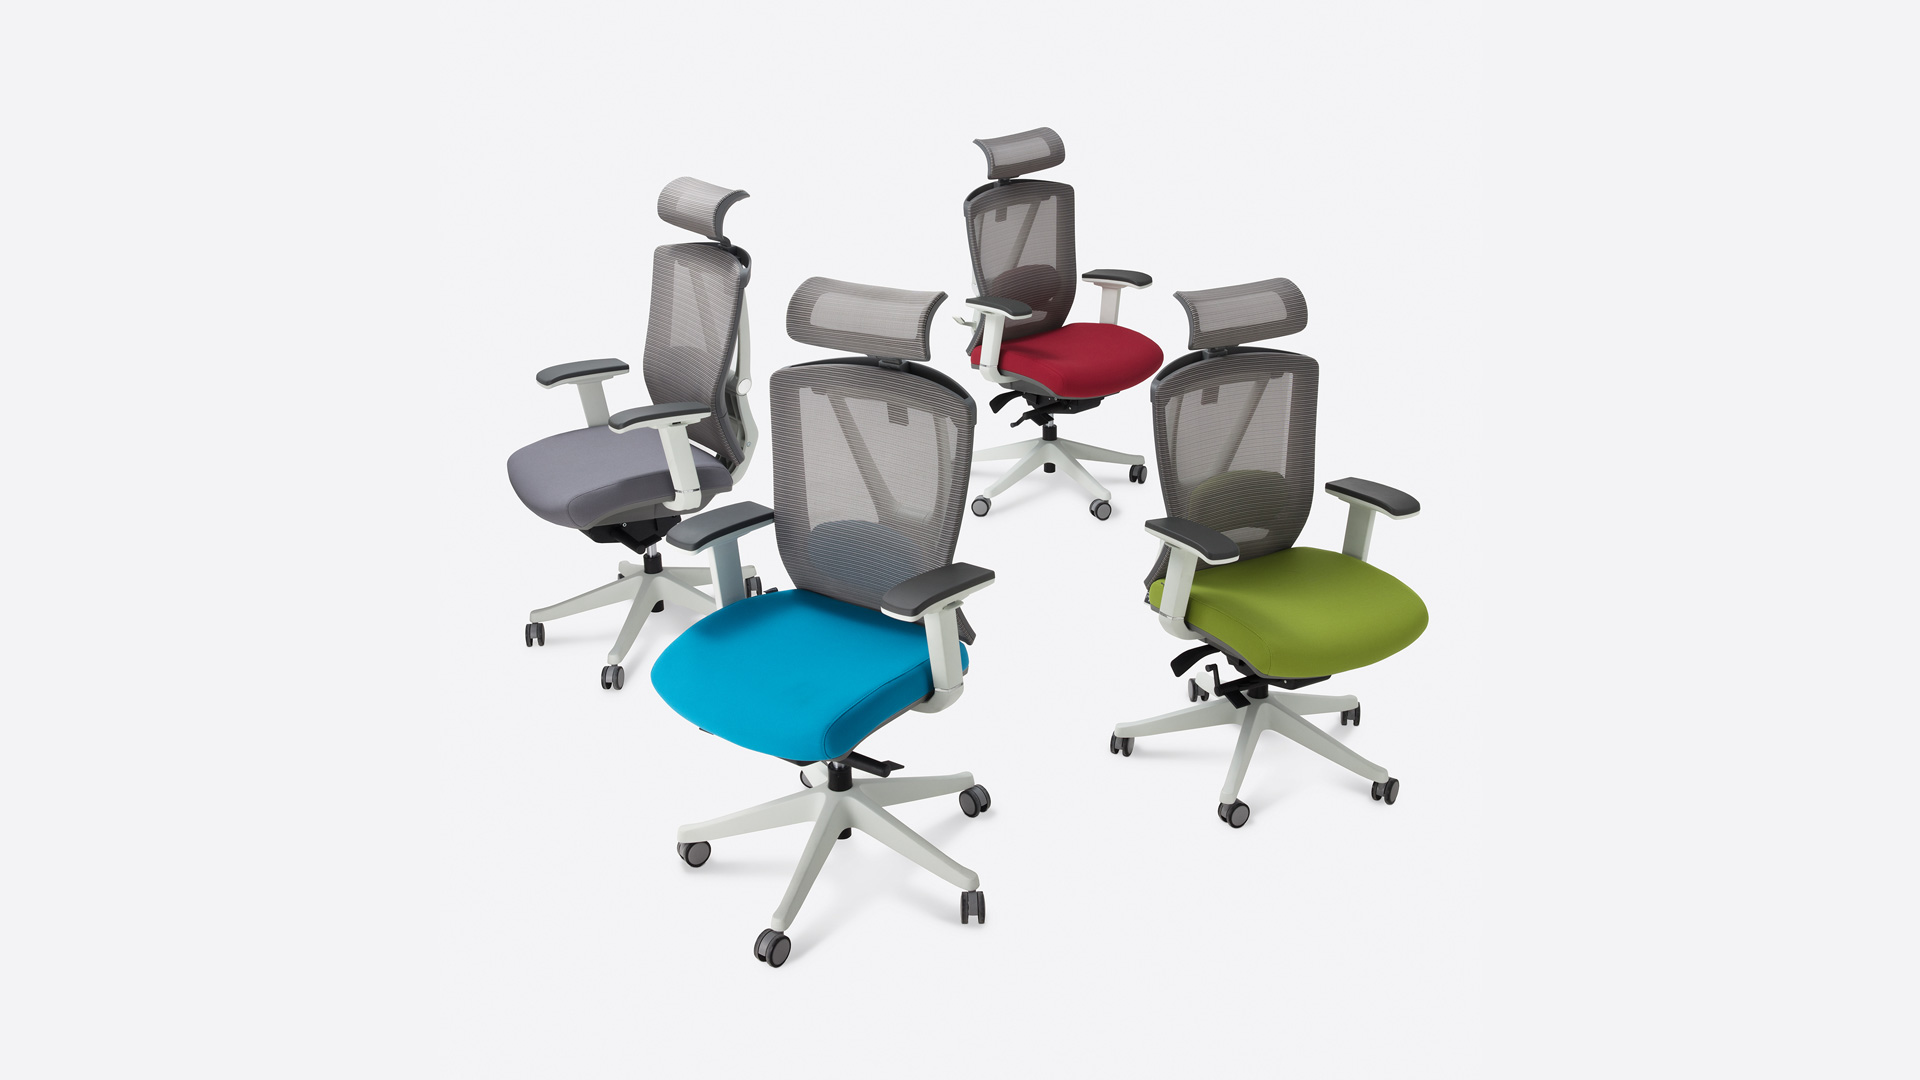 What to keep in mind when choosing a ergonomic office chair - Image 1